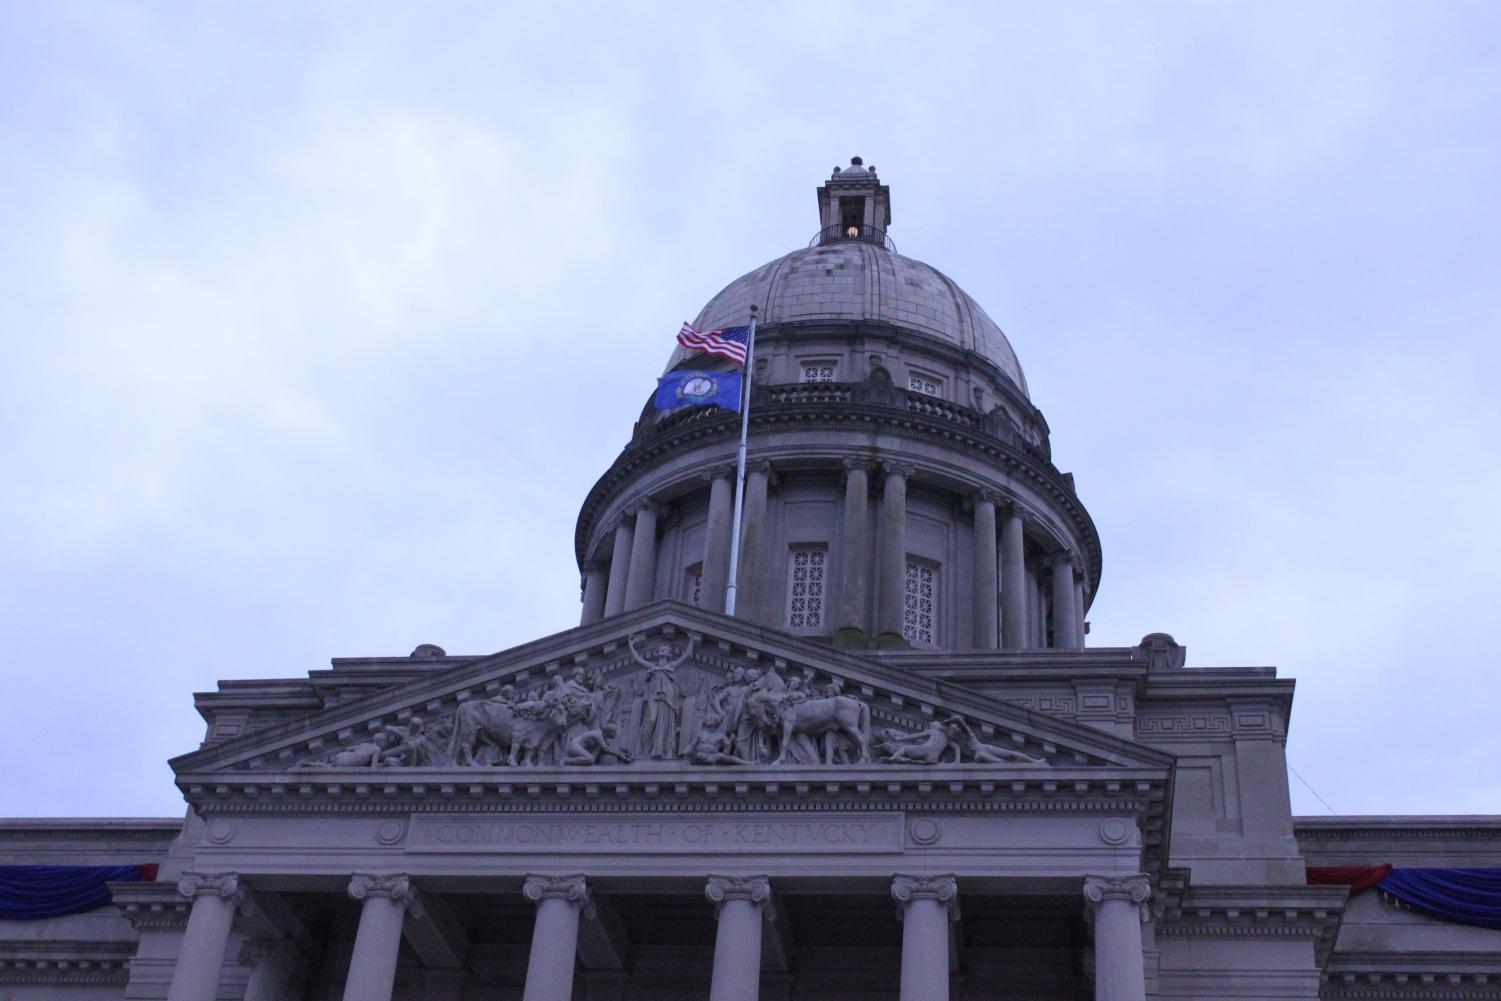 The flags fly high in celebration of the 61st Kentucky Governor's Inauguration ceremony.